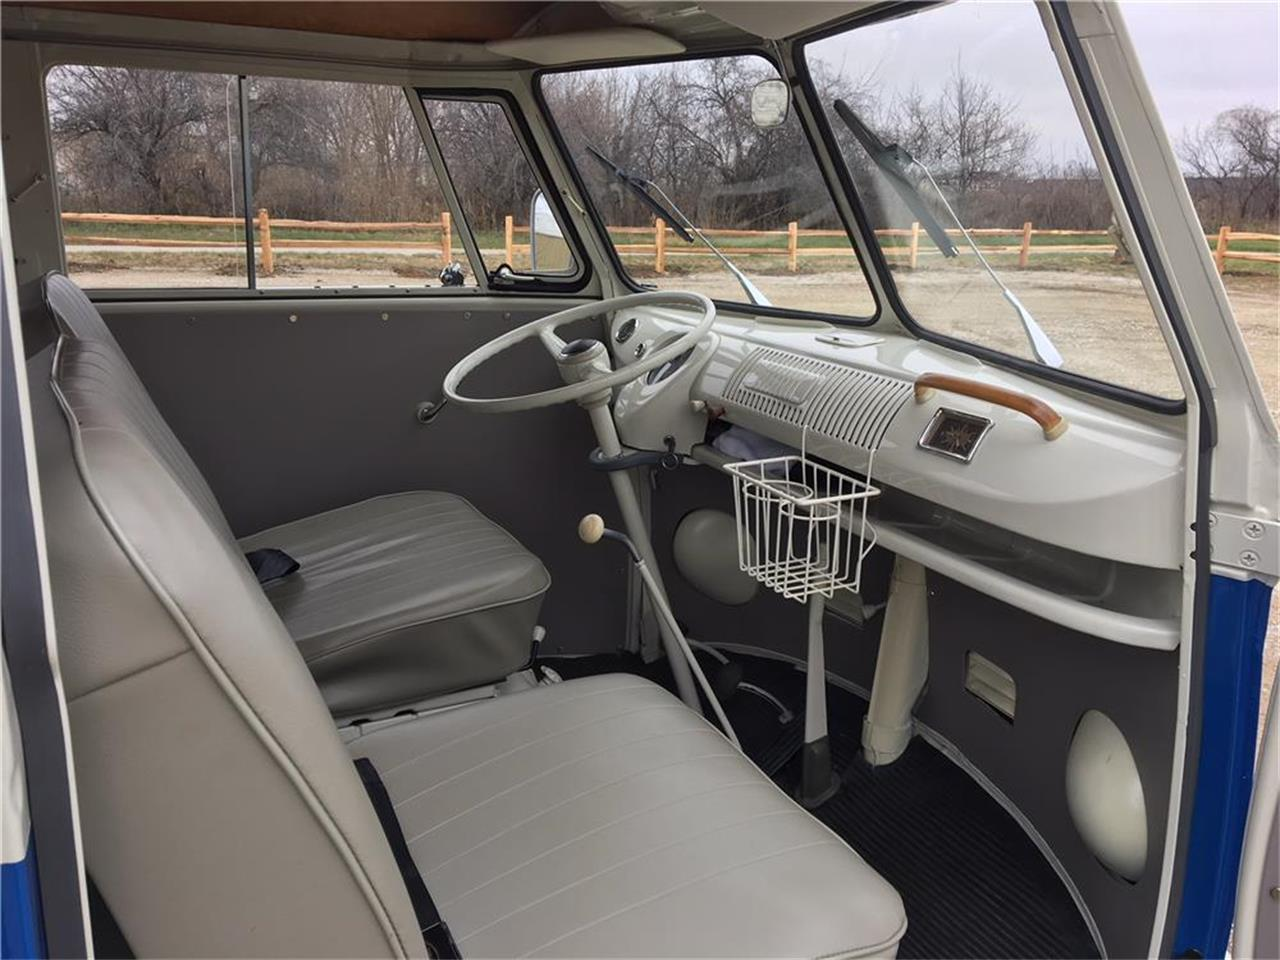 Large Picture of Classic 1965 Westfalia Camper located in Scottsdale Arizona Auction Vehicle - MNMZ